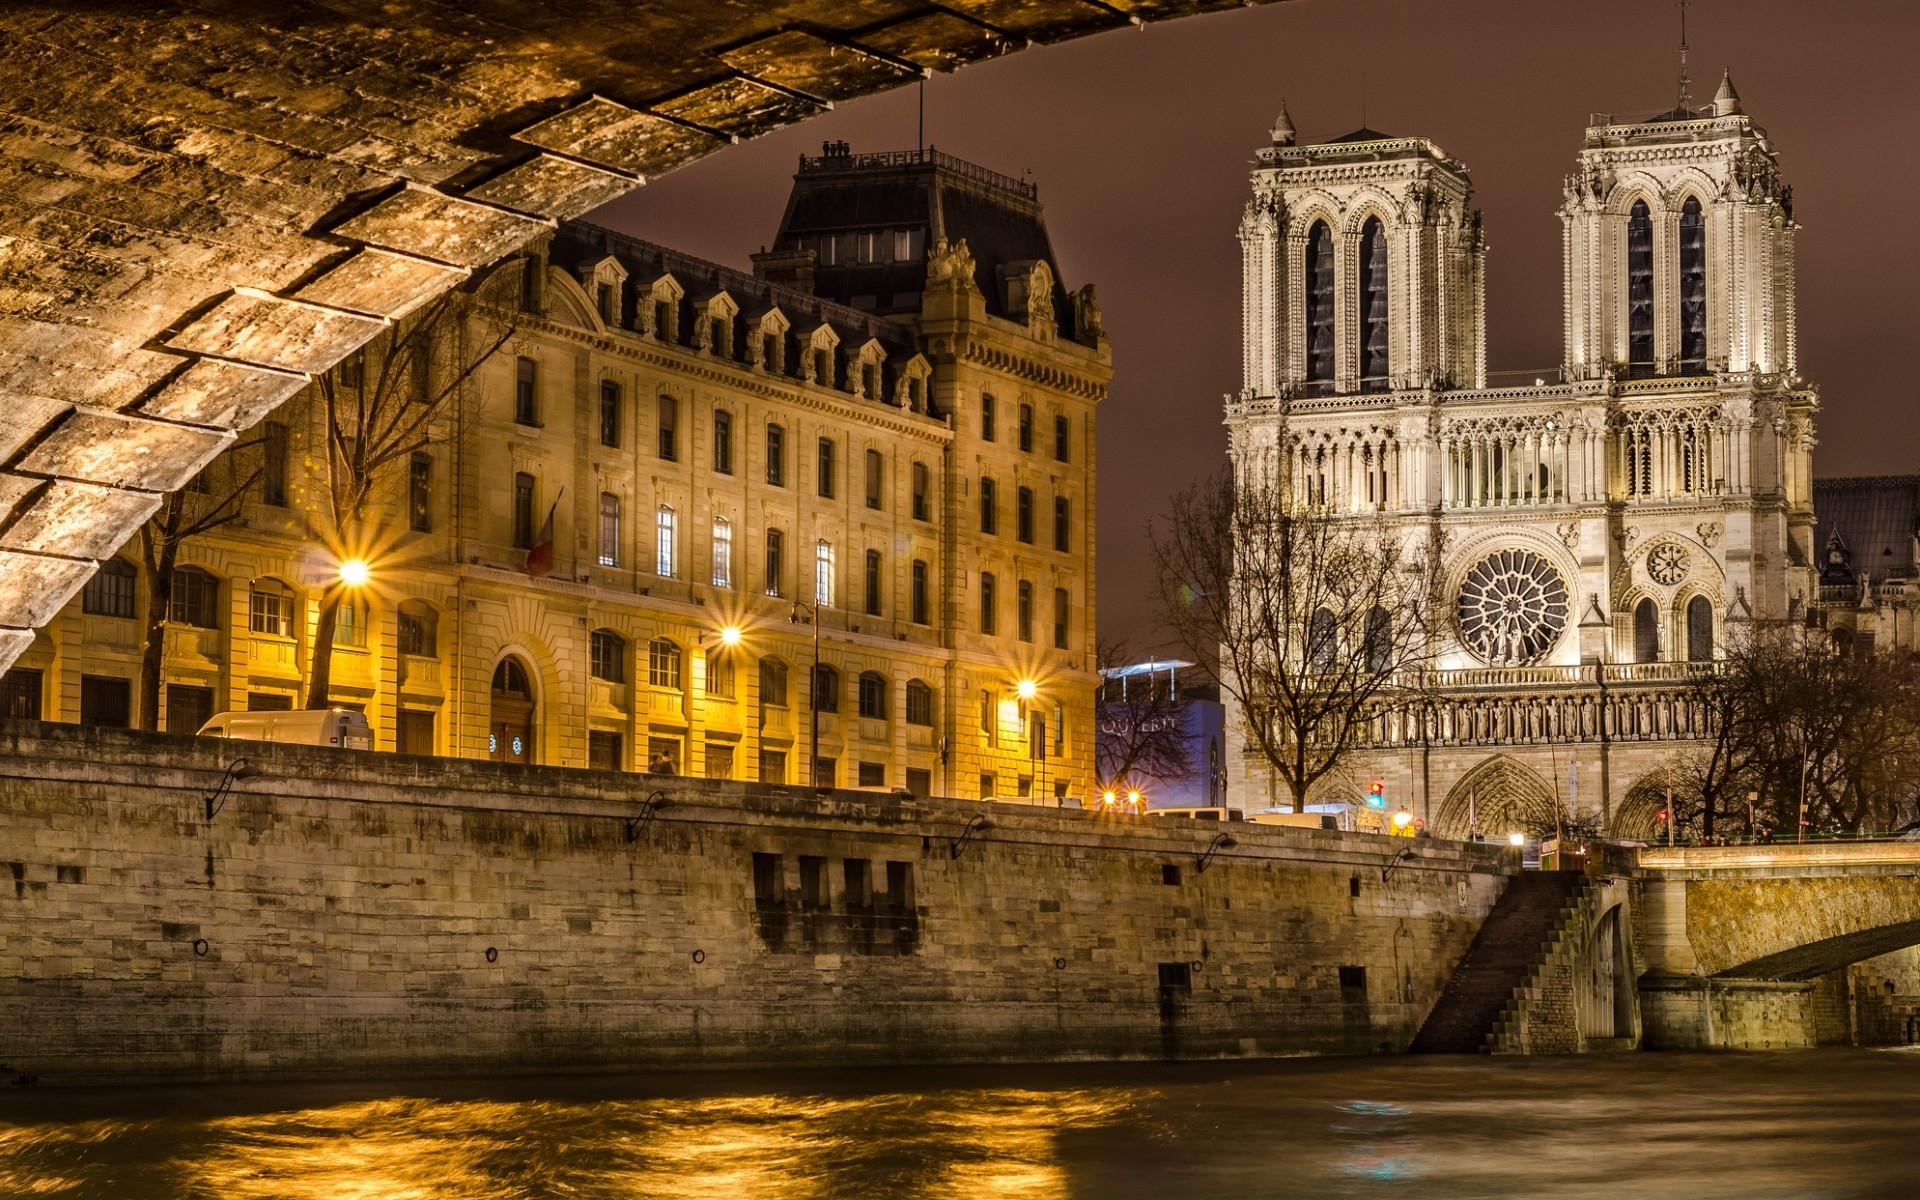 38 Notre Dame De Paris Wallpapers On Wallpapersafari